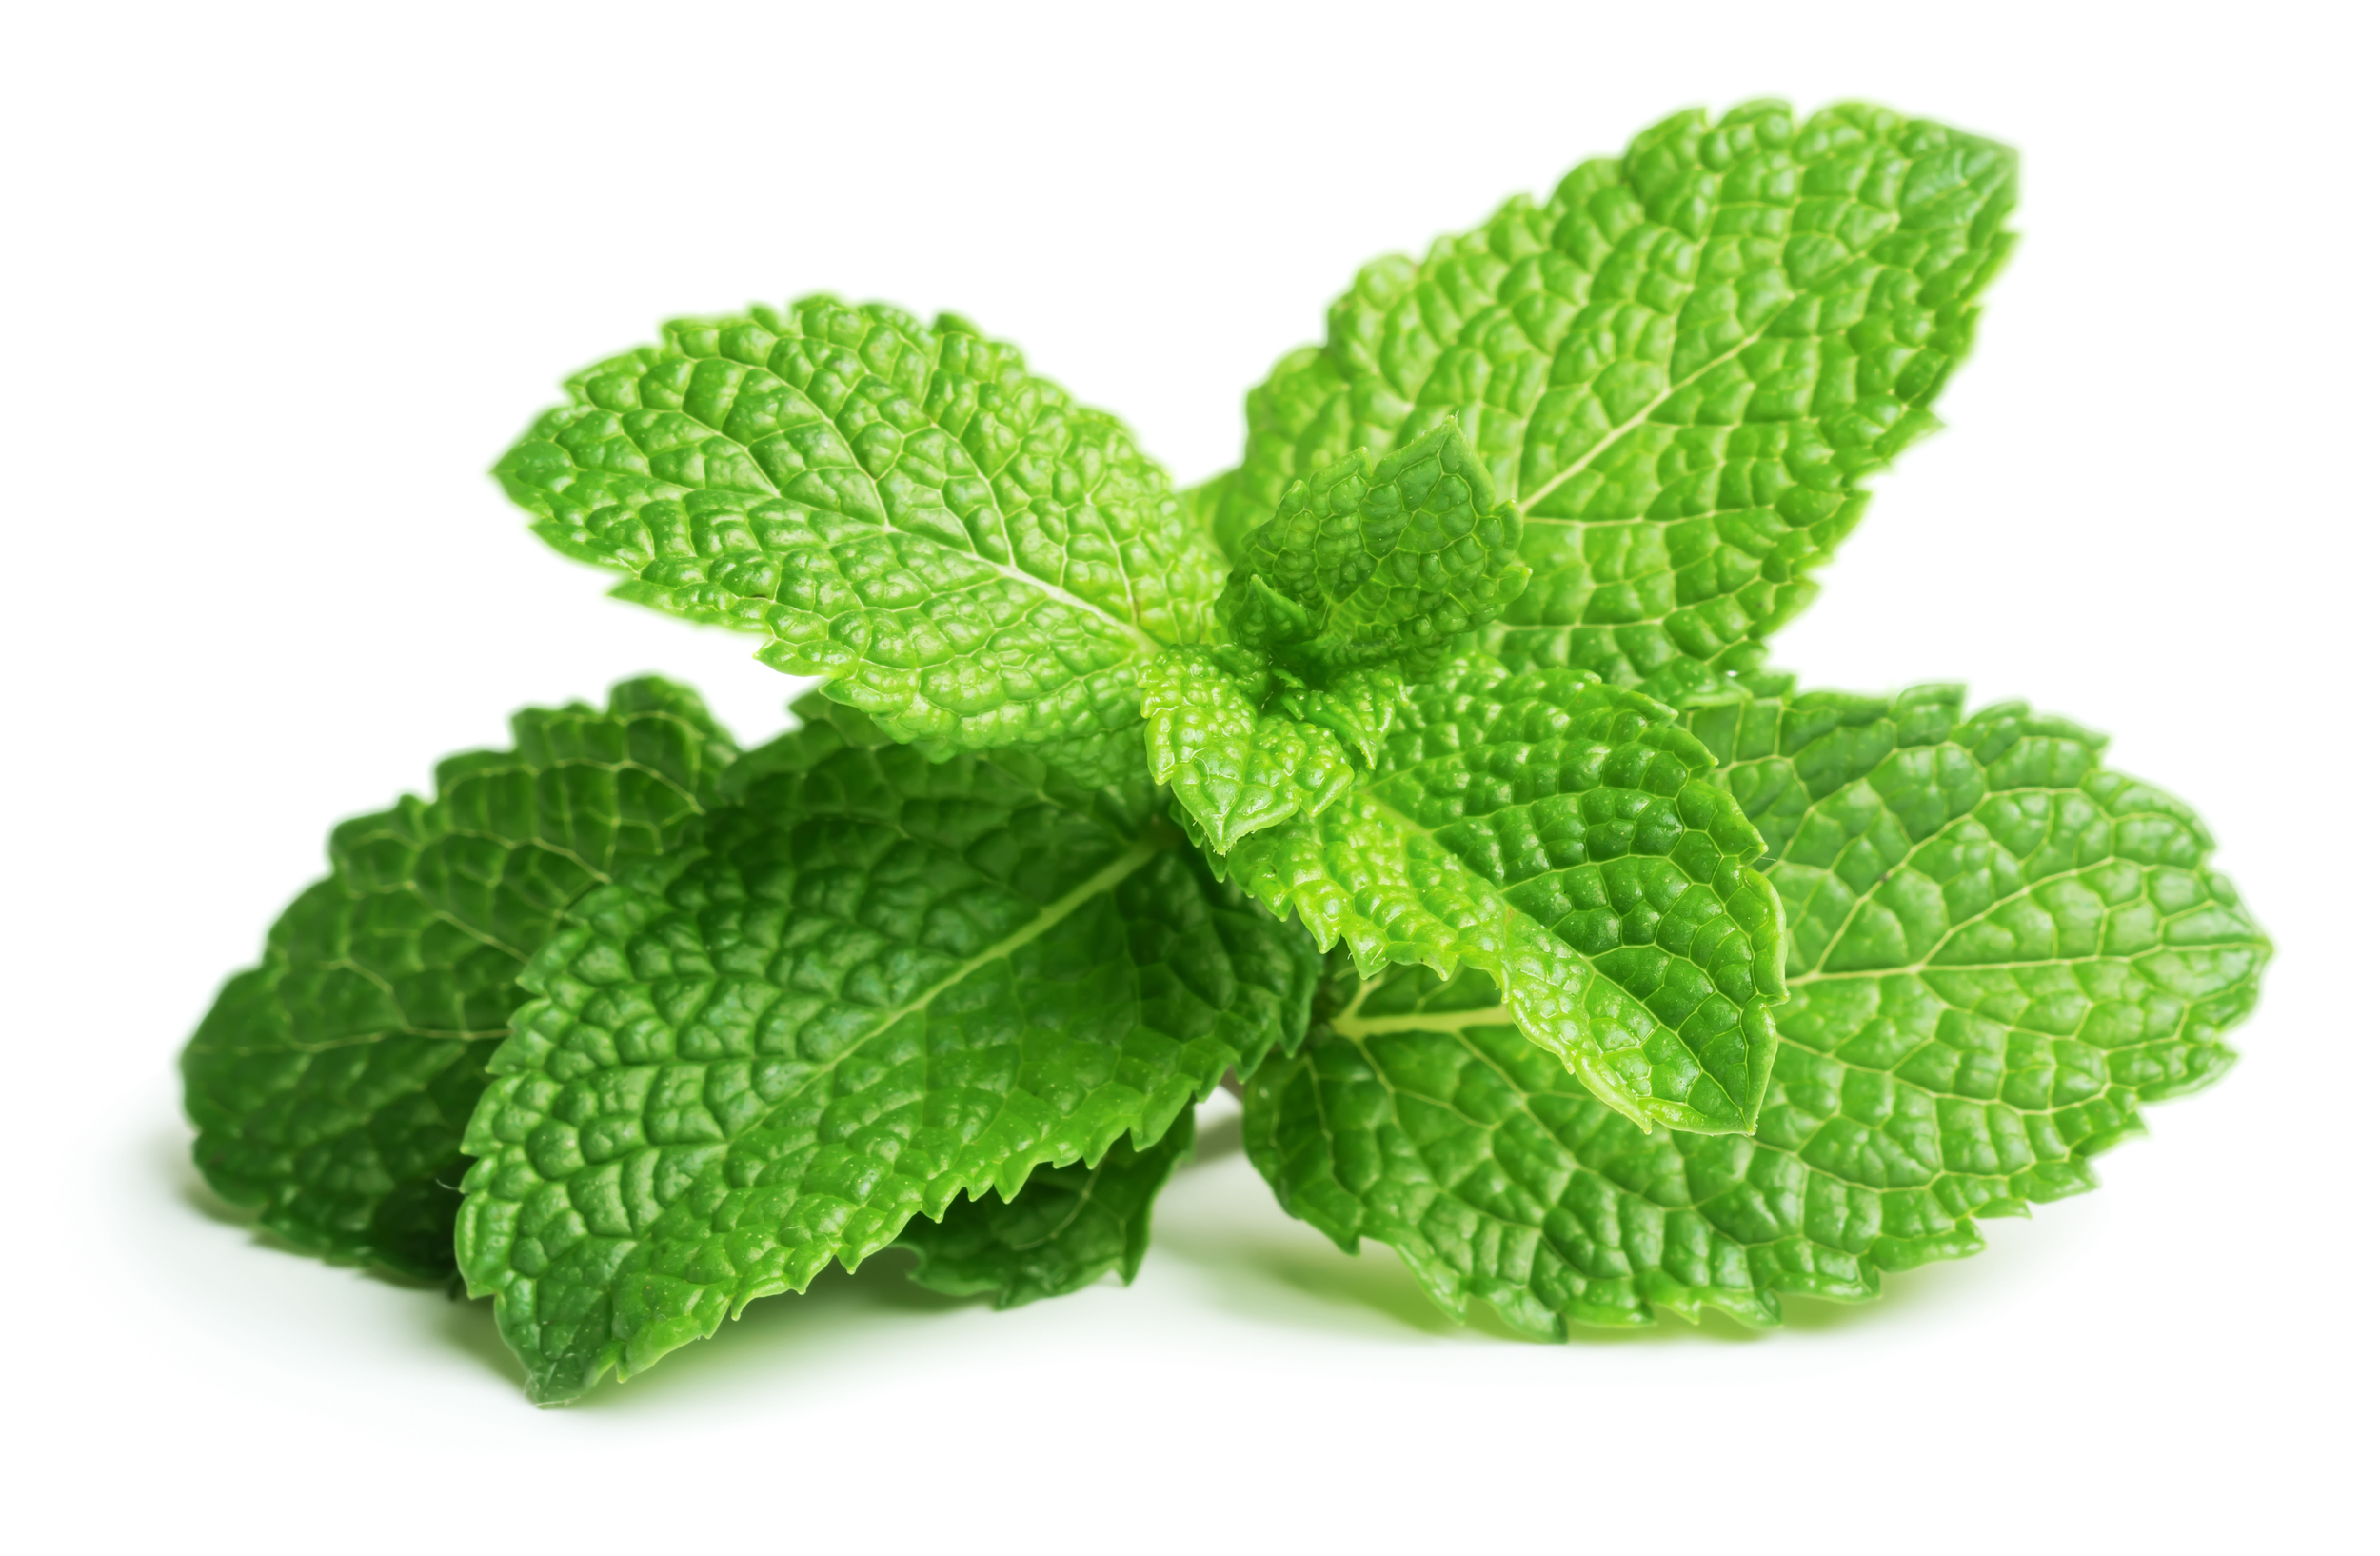 Mint leaves are used in the treatment of cold and flu symptoms, eye irritation, and nasal congestion.